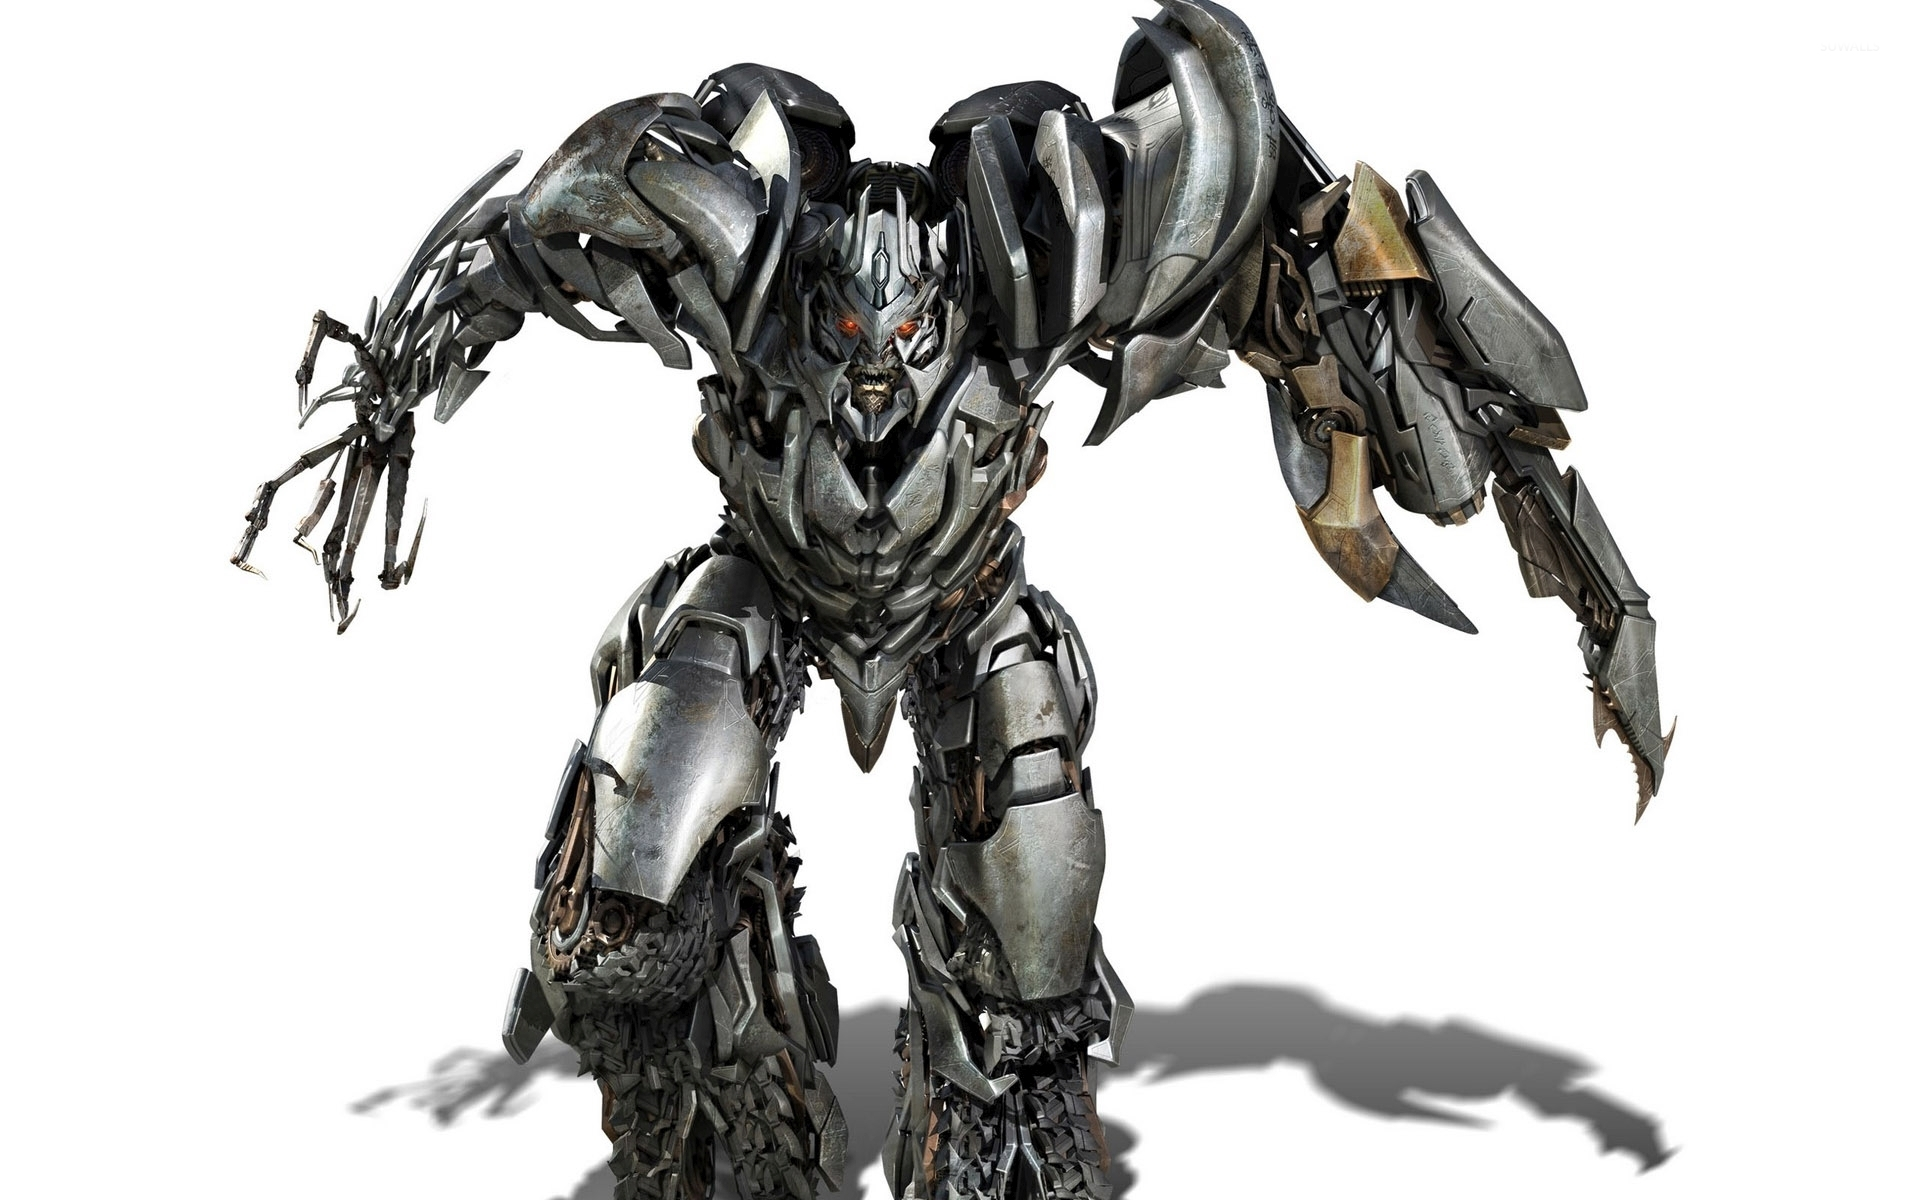 Transformers 3d Wallpapers Free Download Megatron Transformers 2 Wallpaper Movie Wallpapers